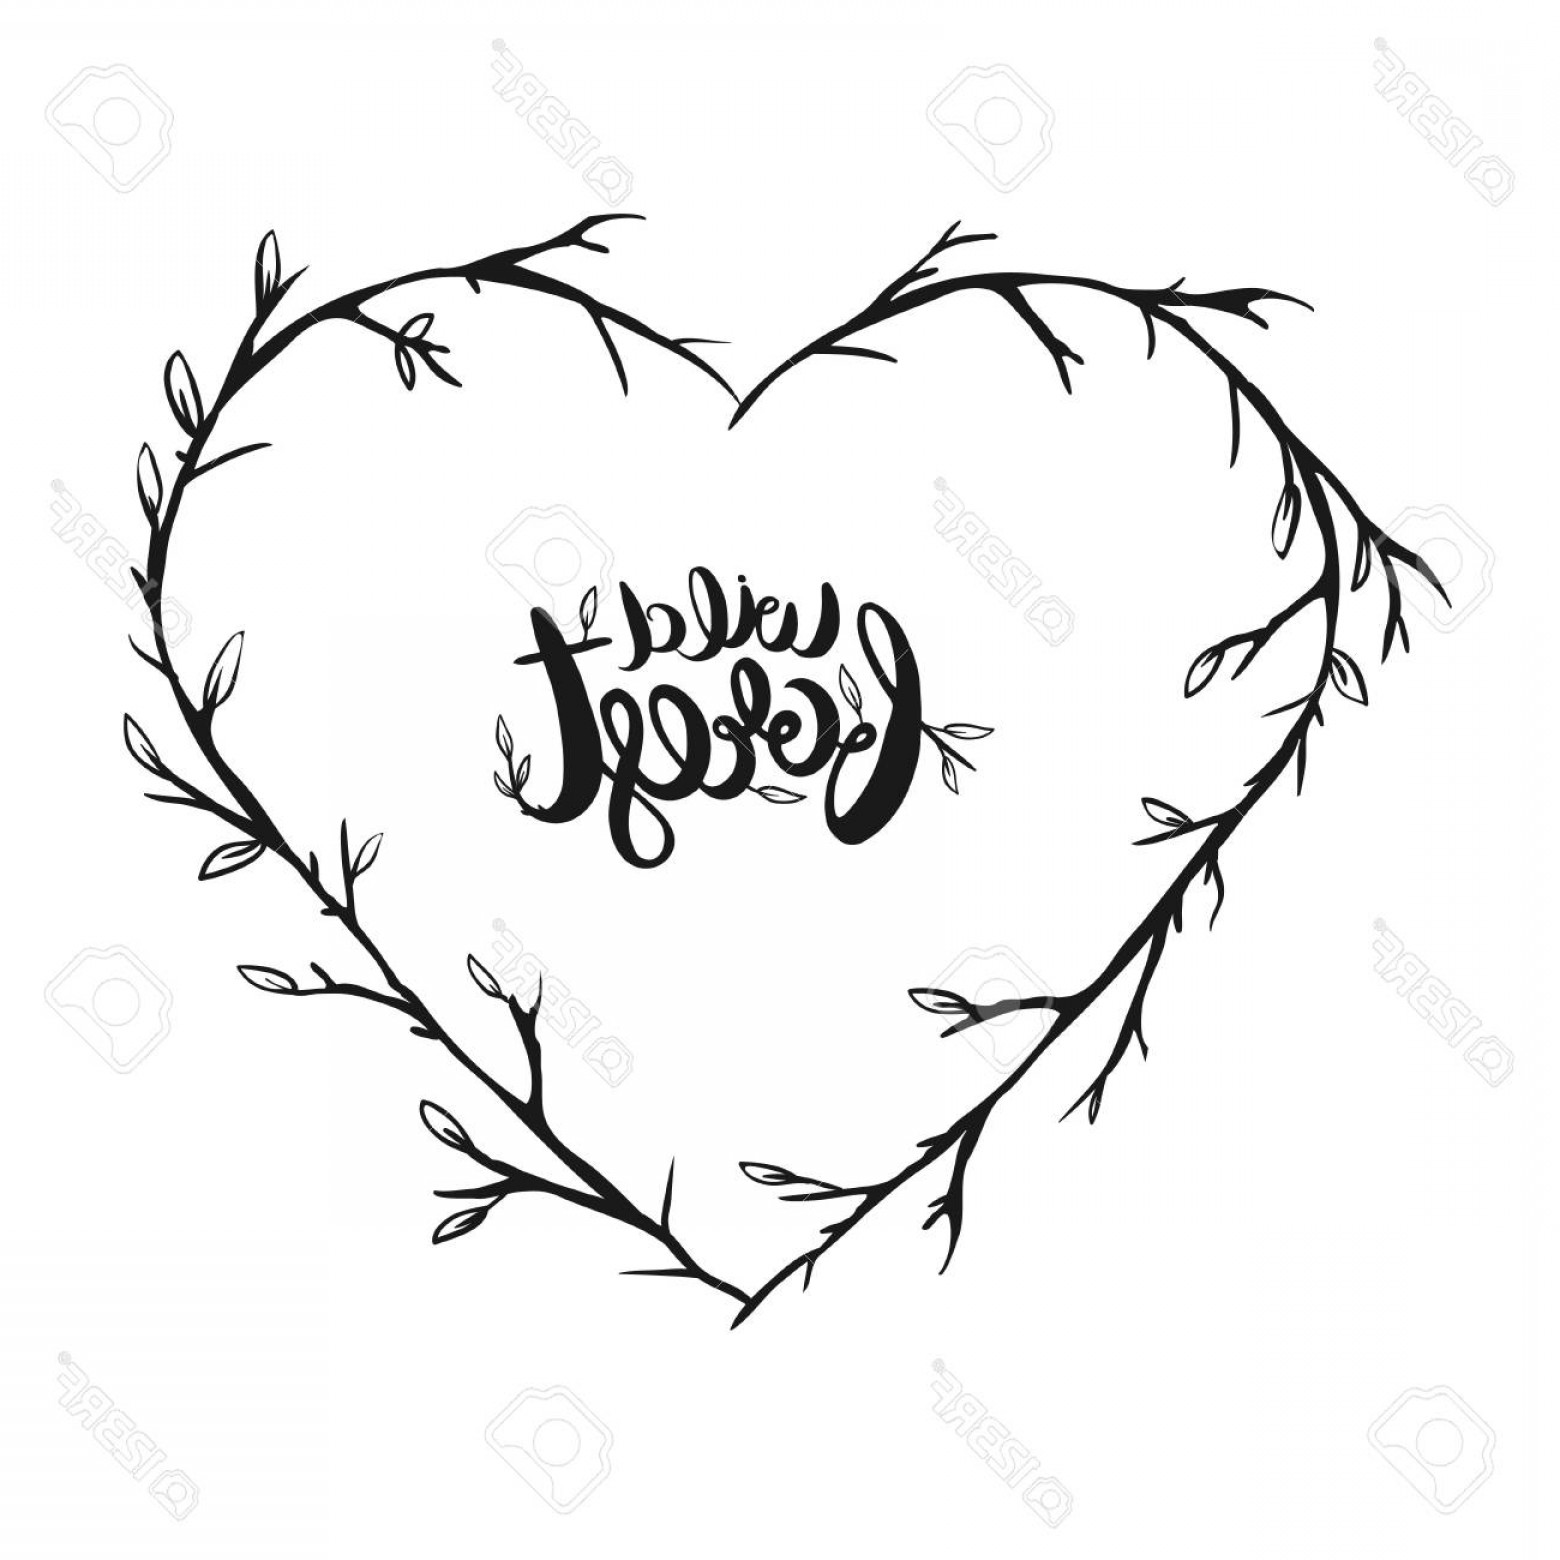 Rustic Heart Vectors: Photostock Vector Rustic Floral Fores Frame